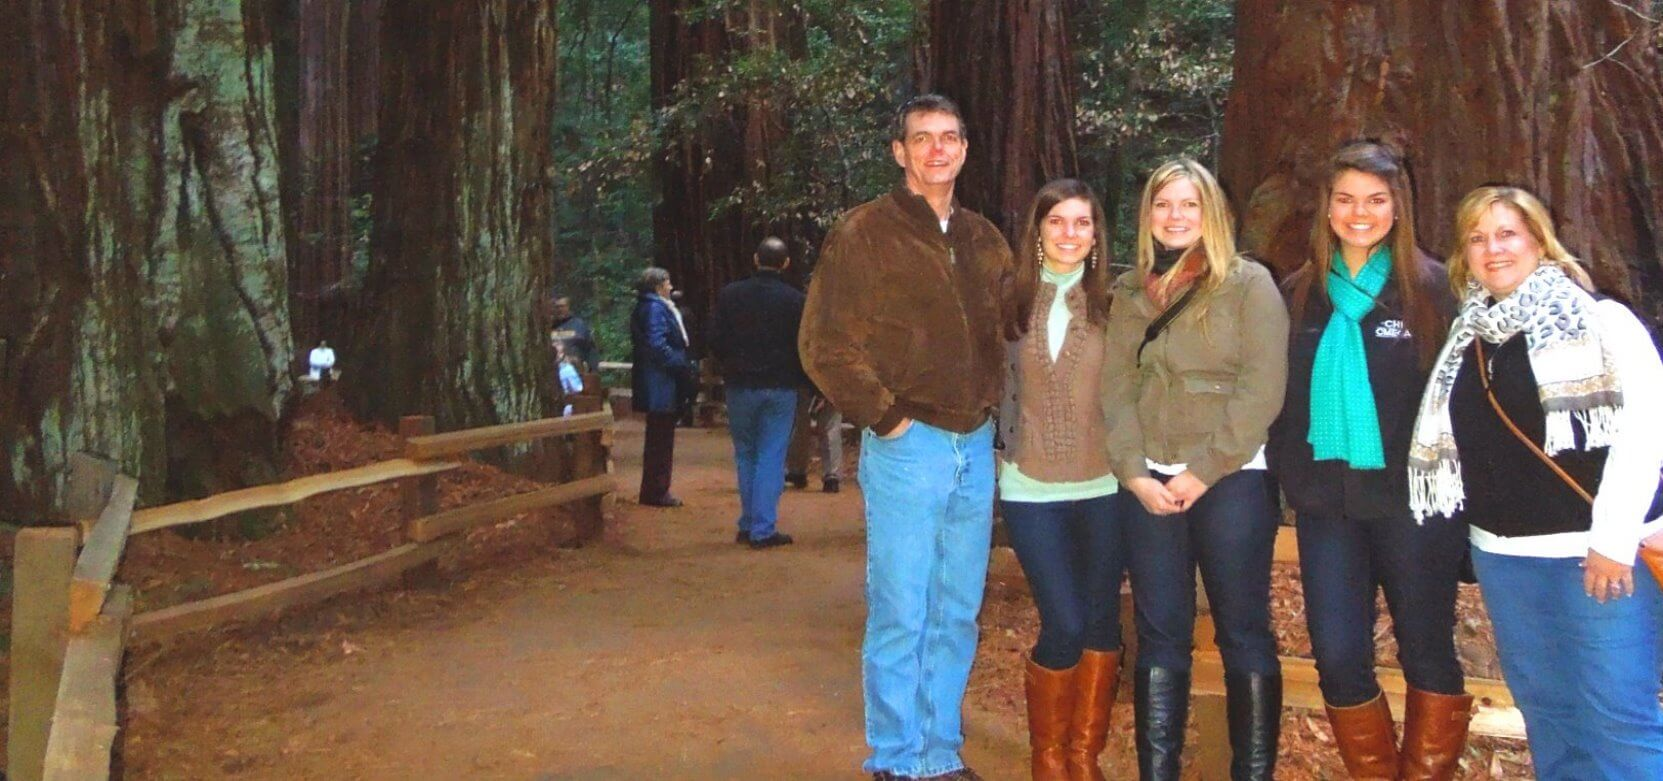 Outdoor-Activities-for-Families-Things-to-Do-San-Francisco-Bay-Area